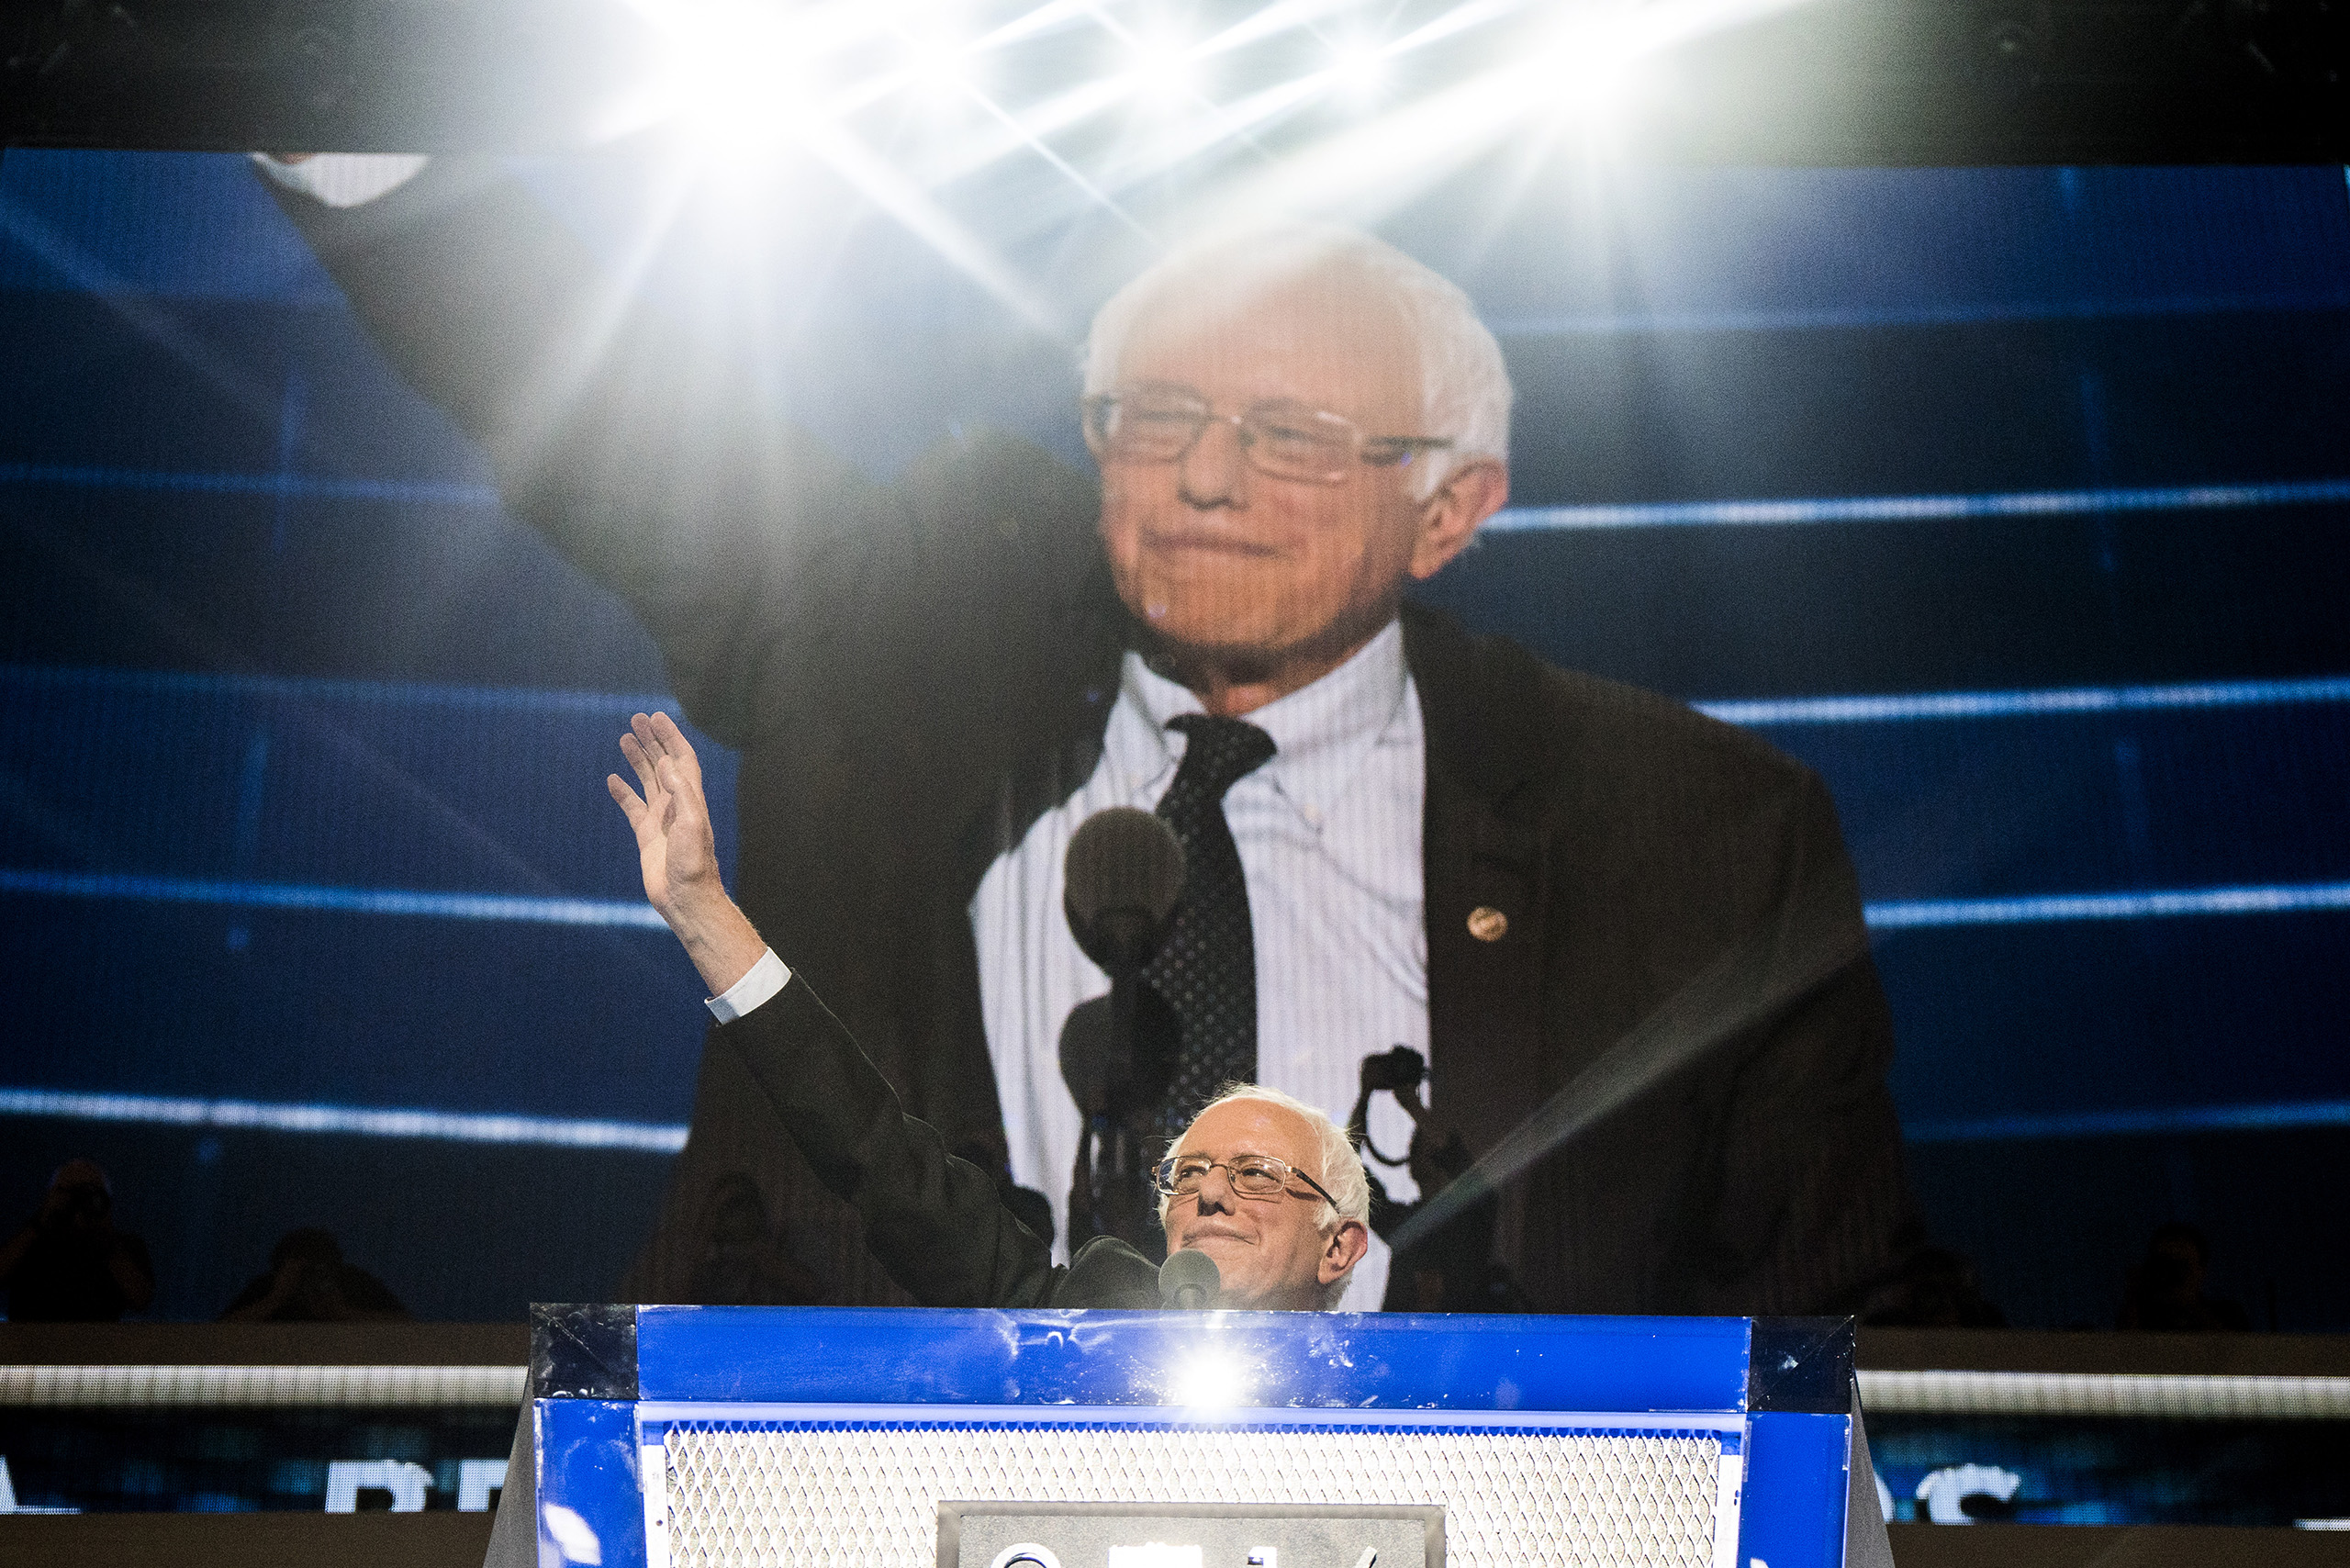 Sen. Bernie Sanders acknowledges the crowd before delivering remarks on the first day of the Democratic National Convention at the Wells Fargo Center, July 25, 2016 in Philadelphia, Pennsylvania.